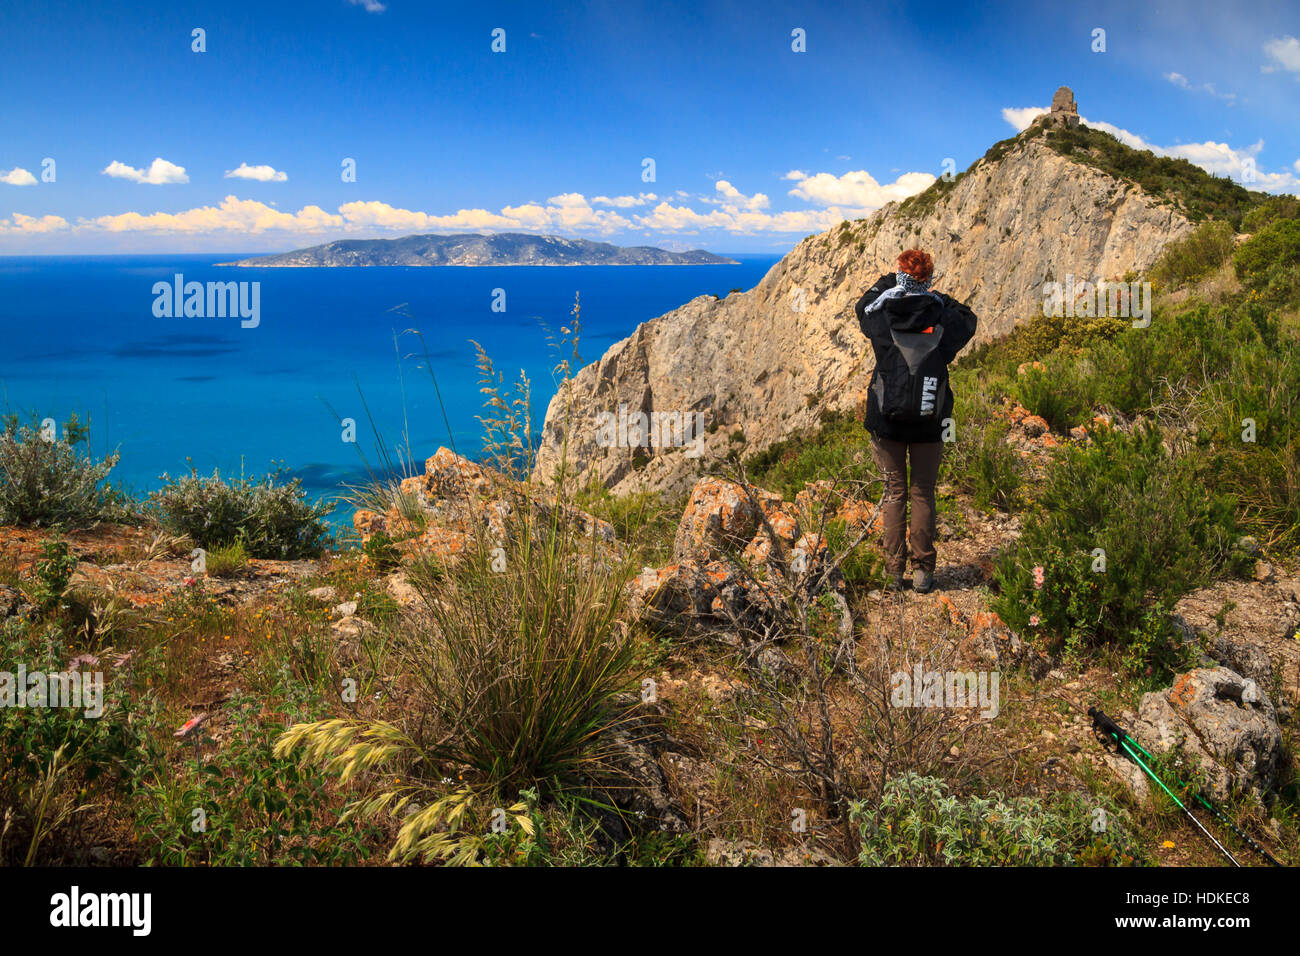 Monte Argentario, April 2016: Woman doing trekking and watching the Giglio island from Tuscan coast in a sunny day - Stock Image